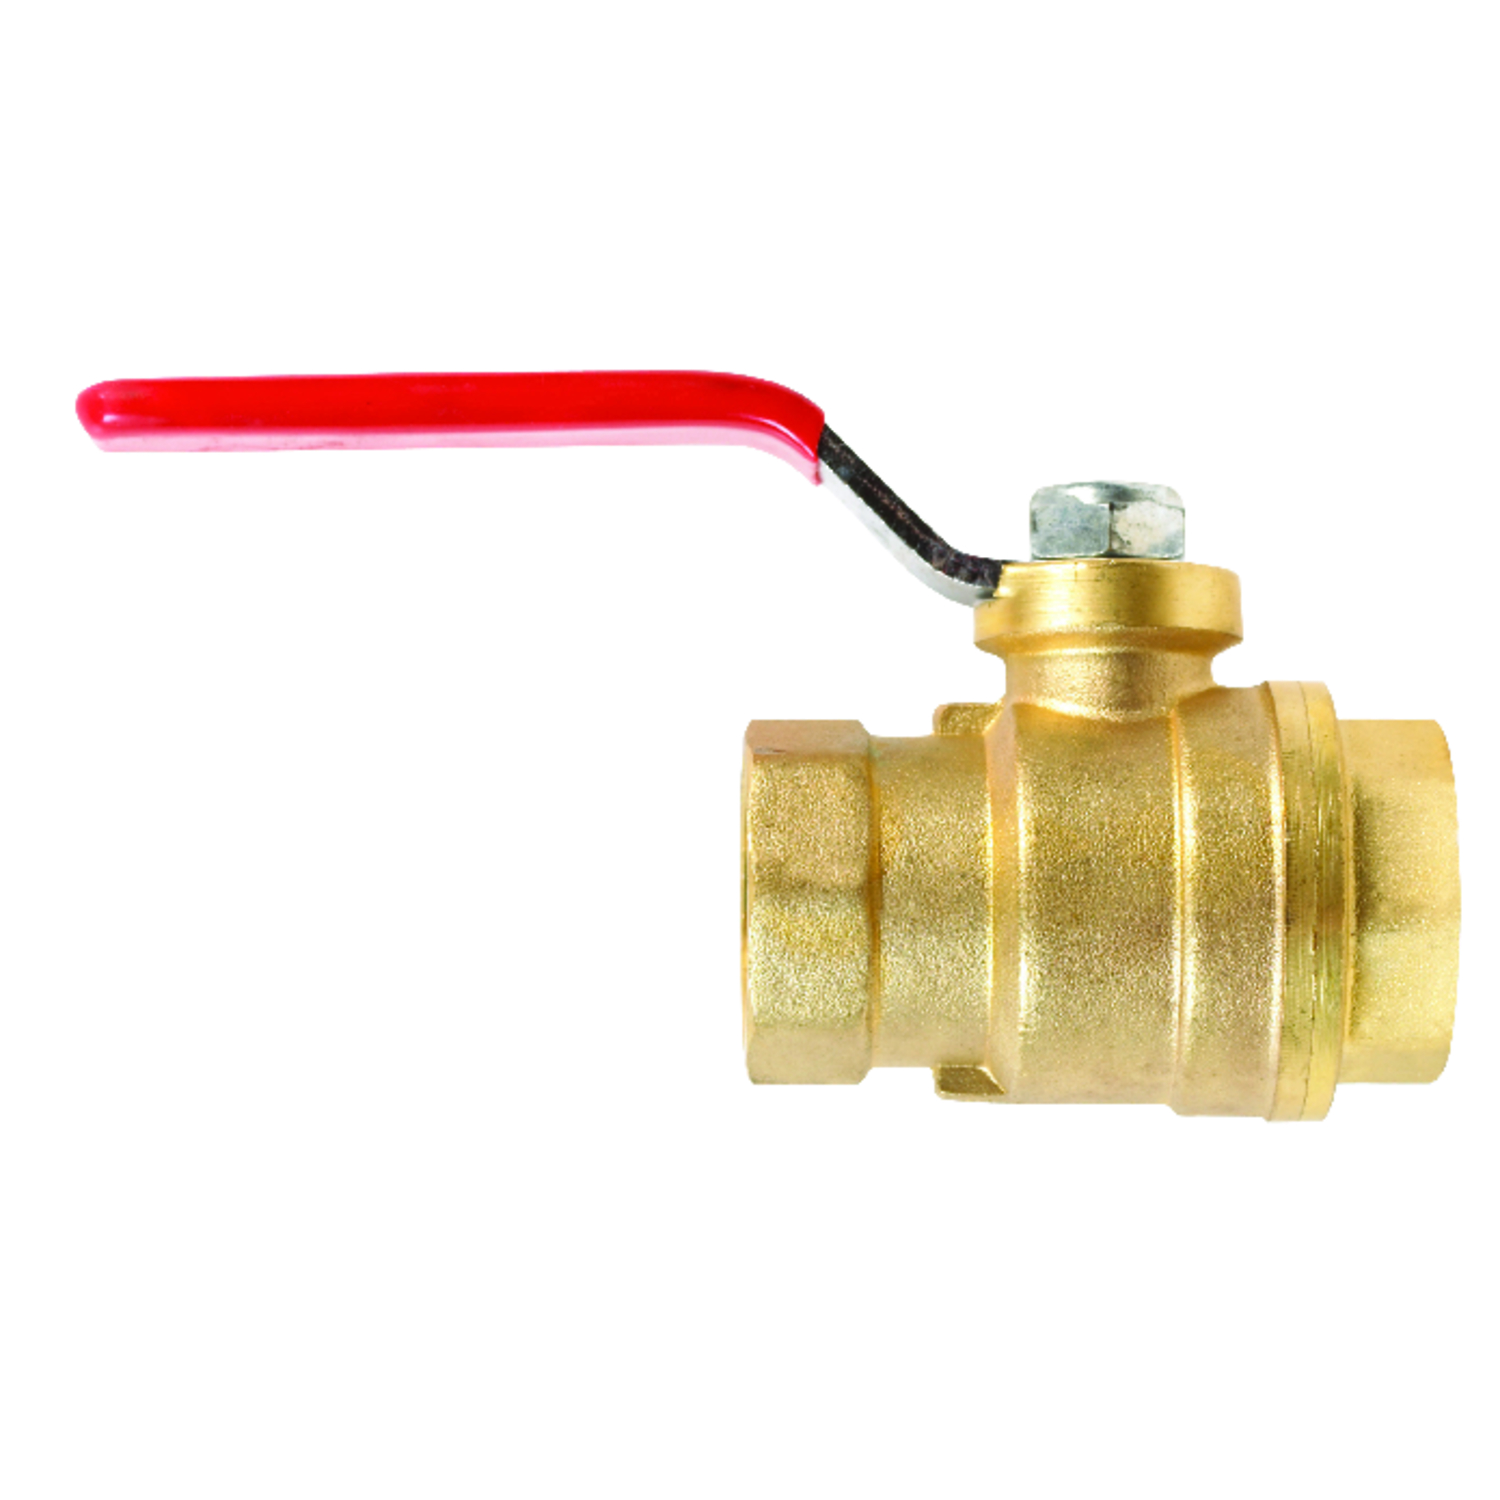 Mueller  Ball Valve  3/4 in. FPT   x 3/4 in. Dia. FPT  Brass  Side Drain